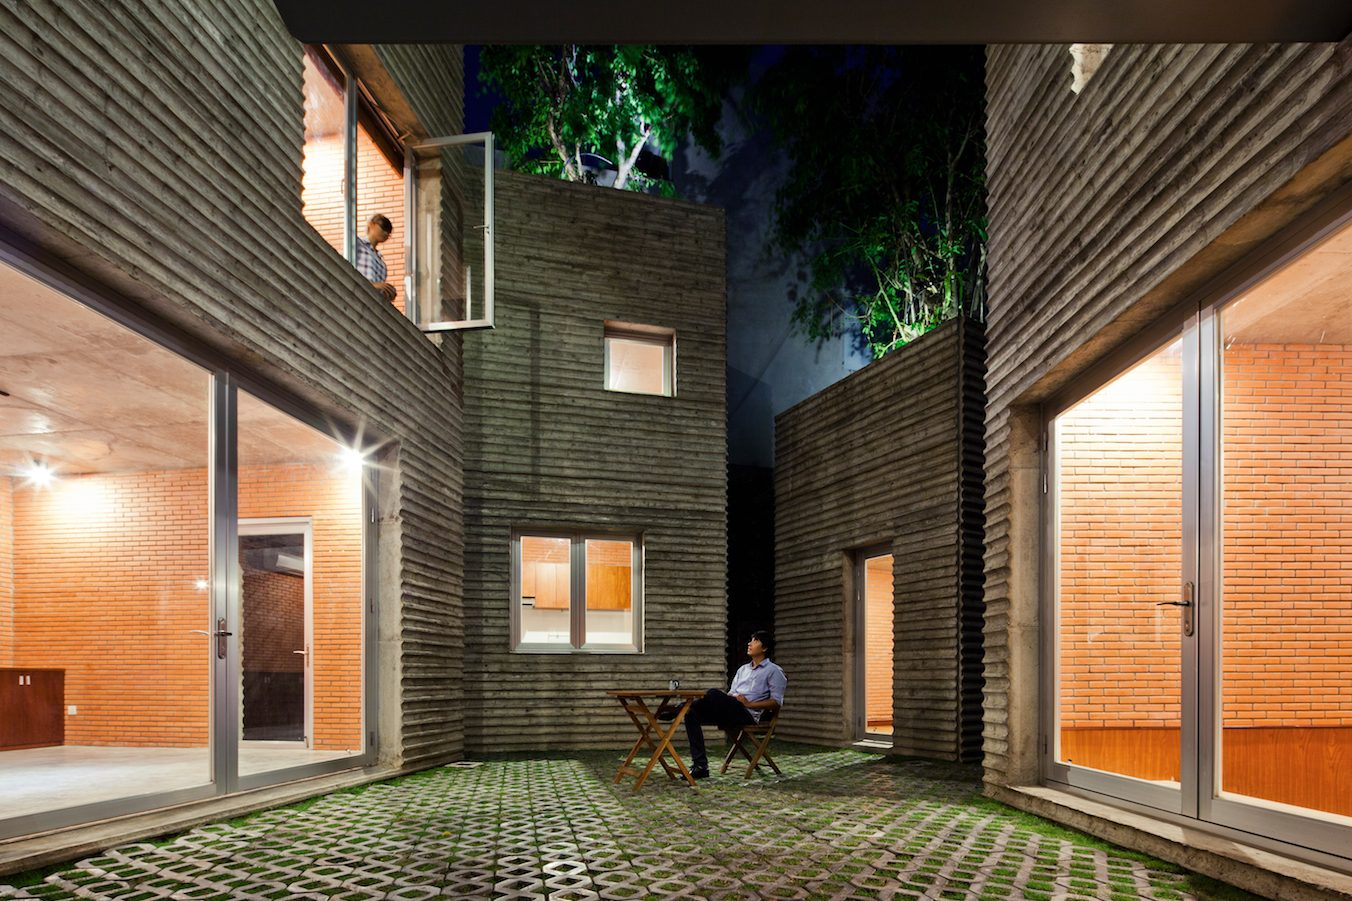 House for trees 1 - House for trees : un arbre par-dessus les toits